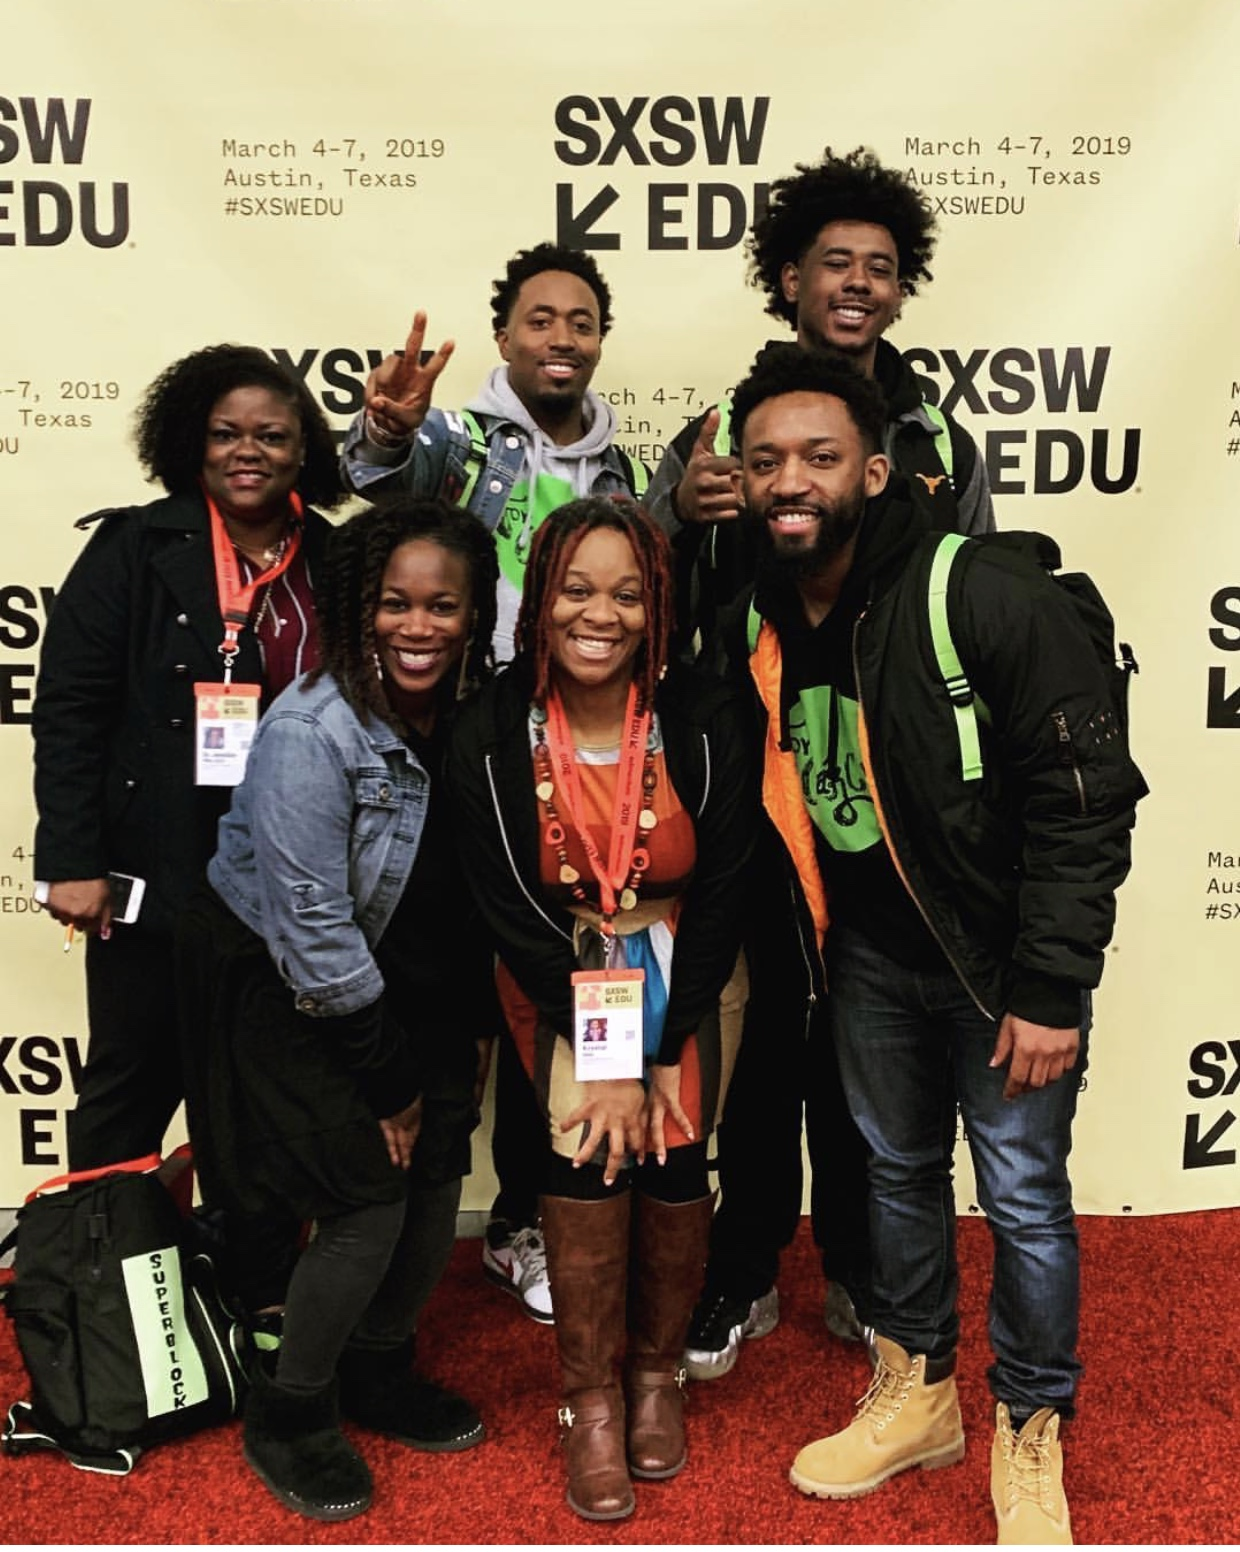 The For Oak Cliff team at the SXSW EDU conference in Austin, Texas